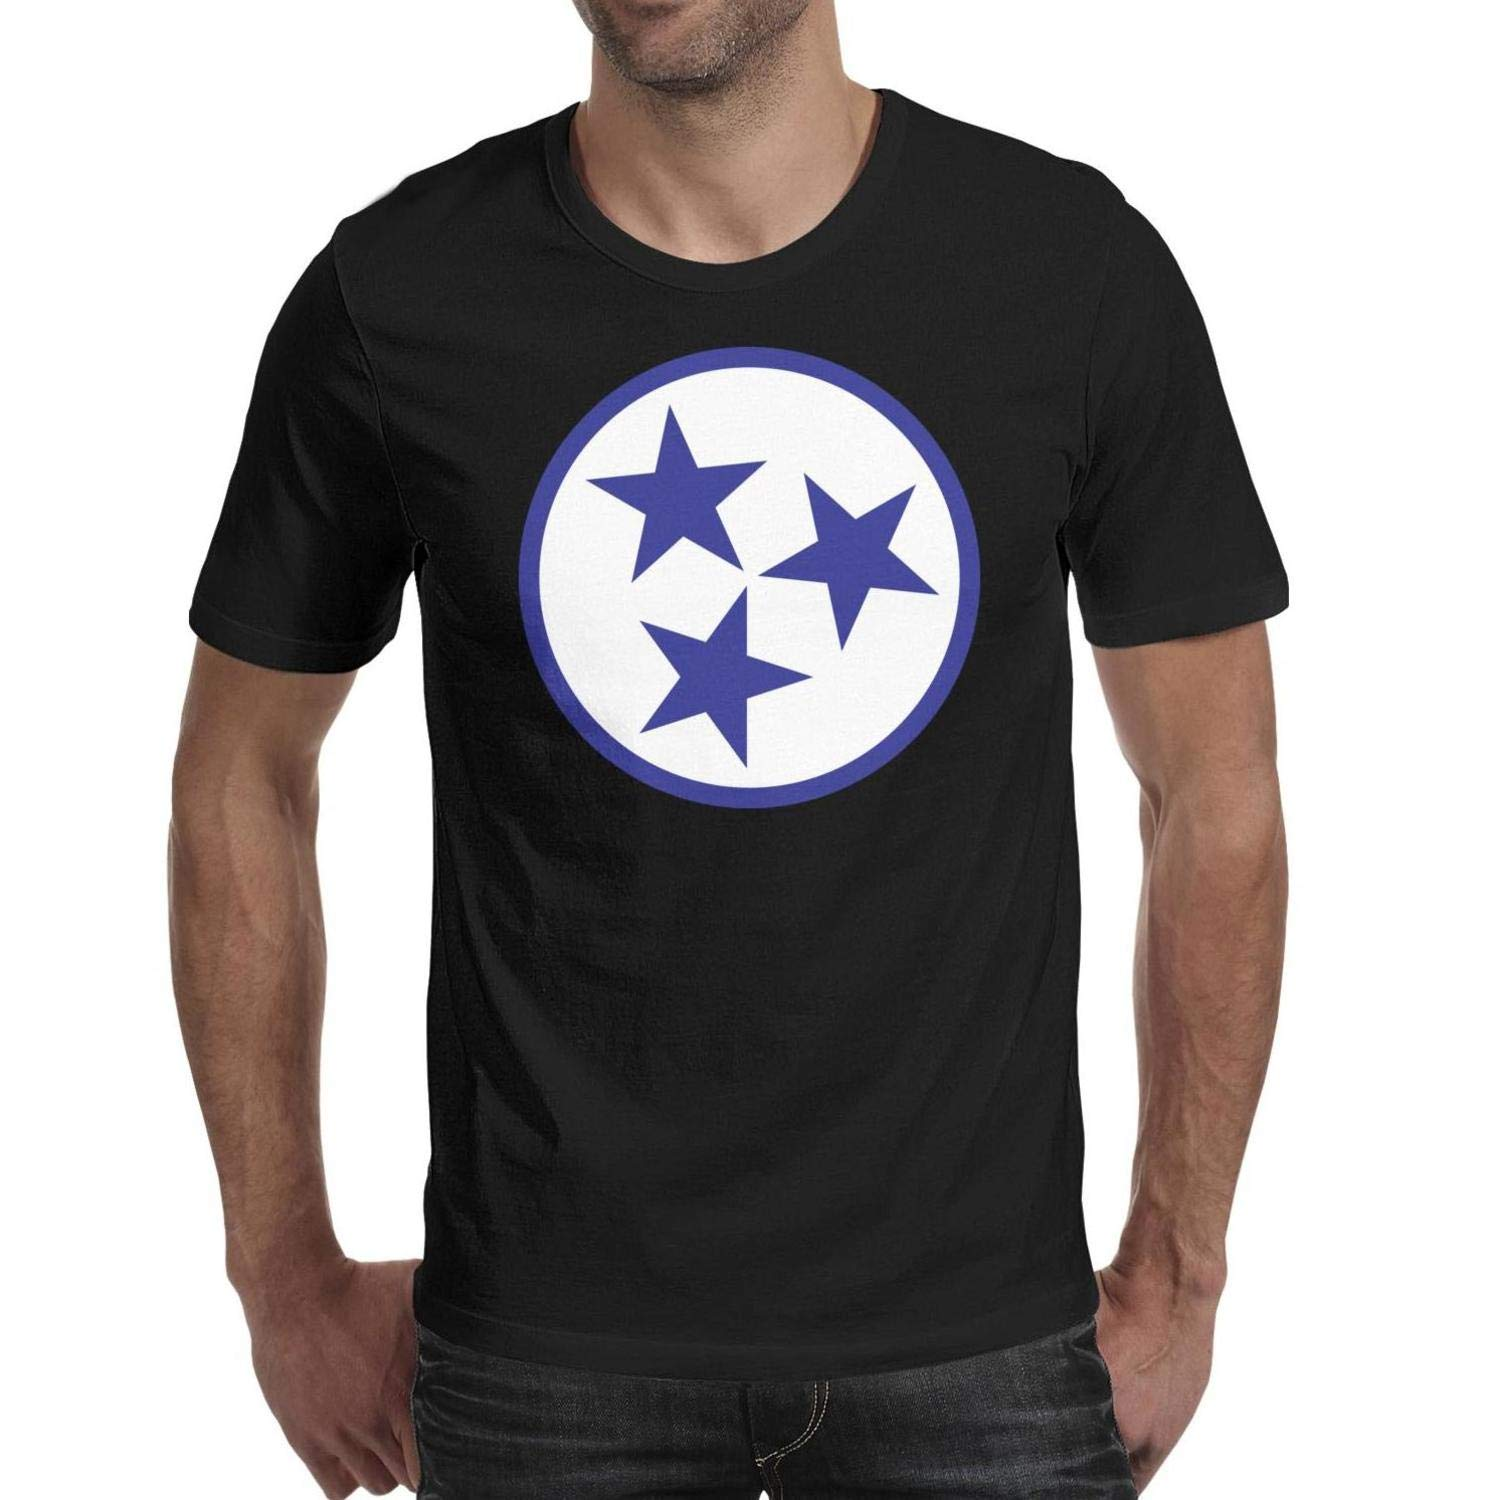 Casual Tennessee Star Blue Mens Tops T Shirts T-Shirt Cotton,Cable,Slim-Fit,Crew Neck,Solid,Graphic,Novelty} Comfy